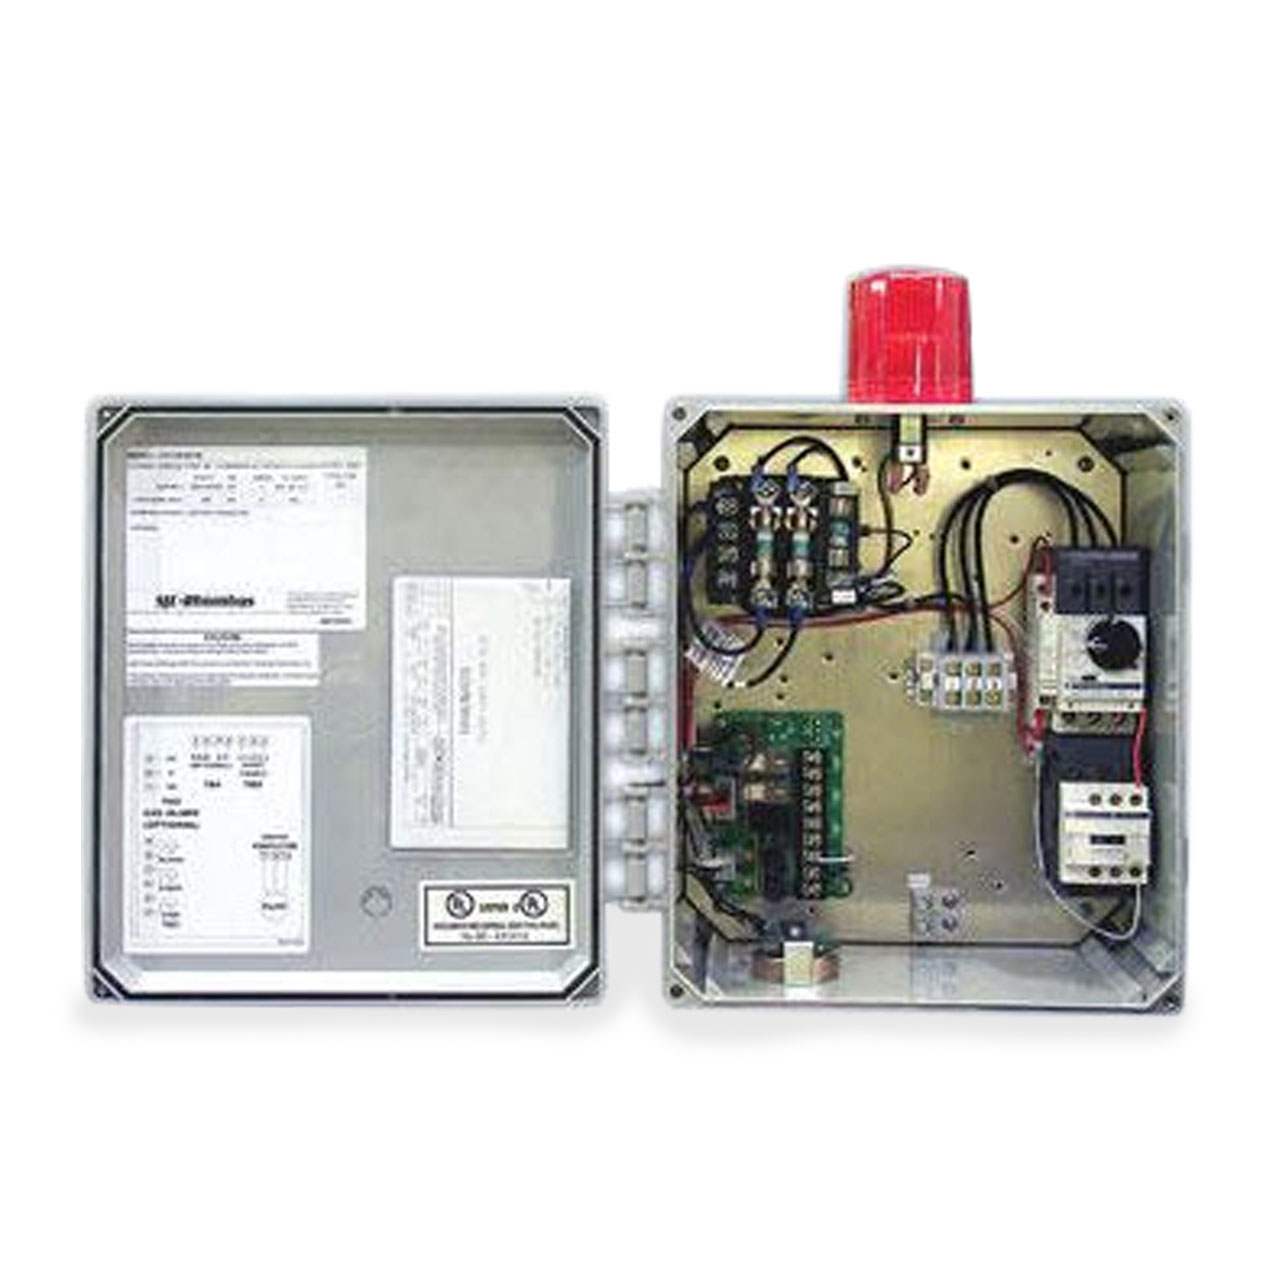 Sje Rhombus Model 312 3 Phase 208 240 480 600v Simplex Examine This Threephase Motor Control Circuit Where Fuses Protect Contactor Panel Cp Sje312